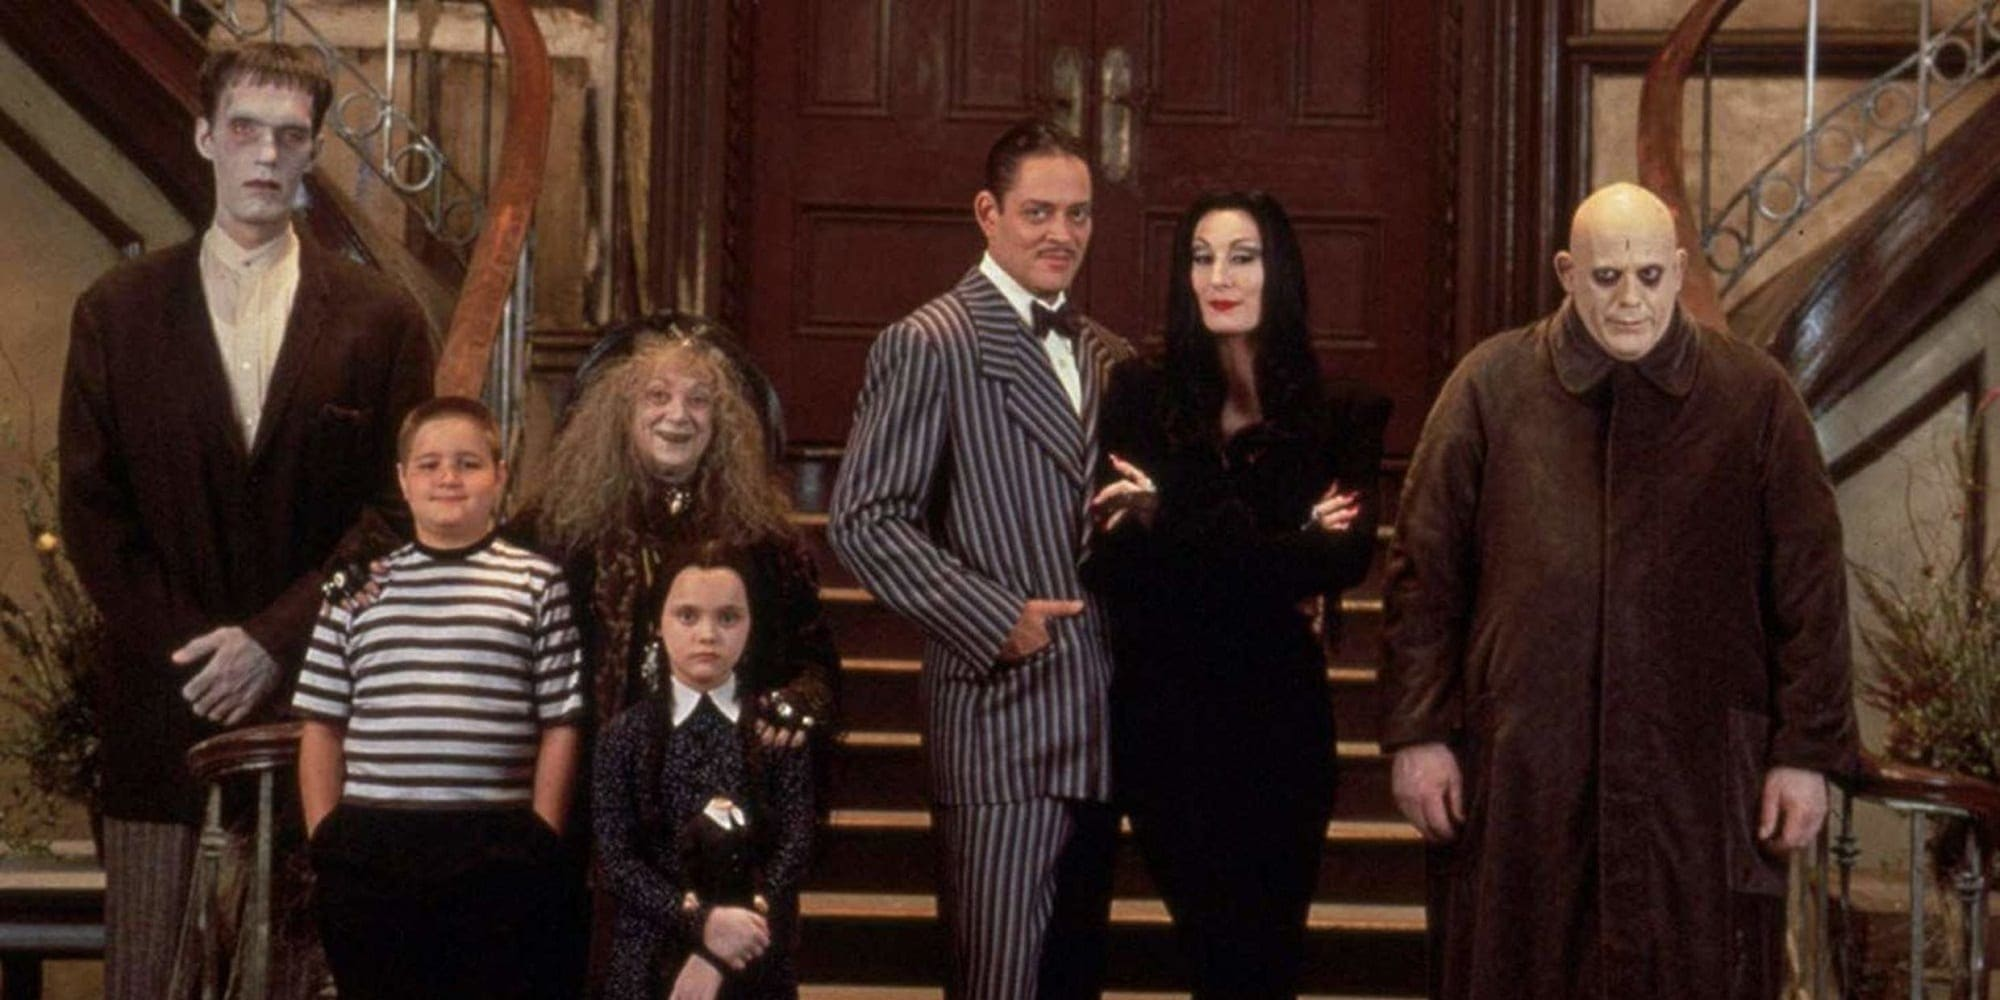 The Addams Family Live-Action Tim Burton Featured Image (But This is the 1991 Version) 1991 Addams Family film.